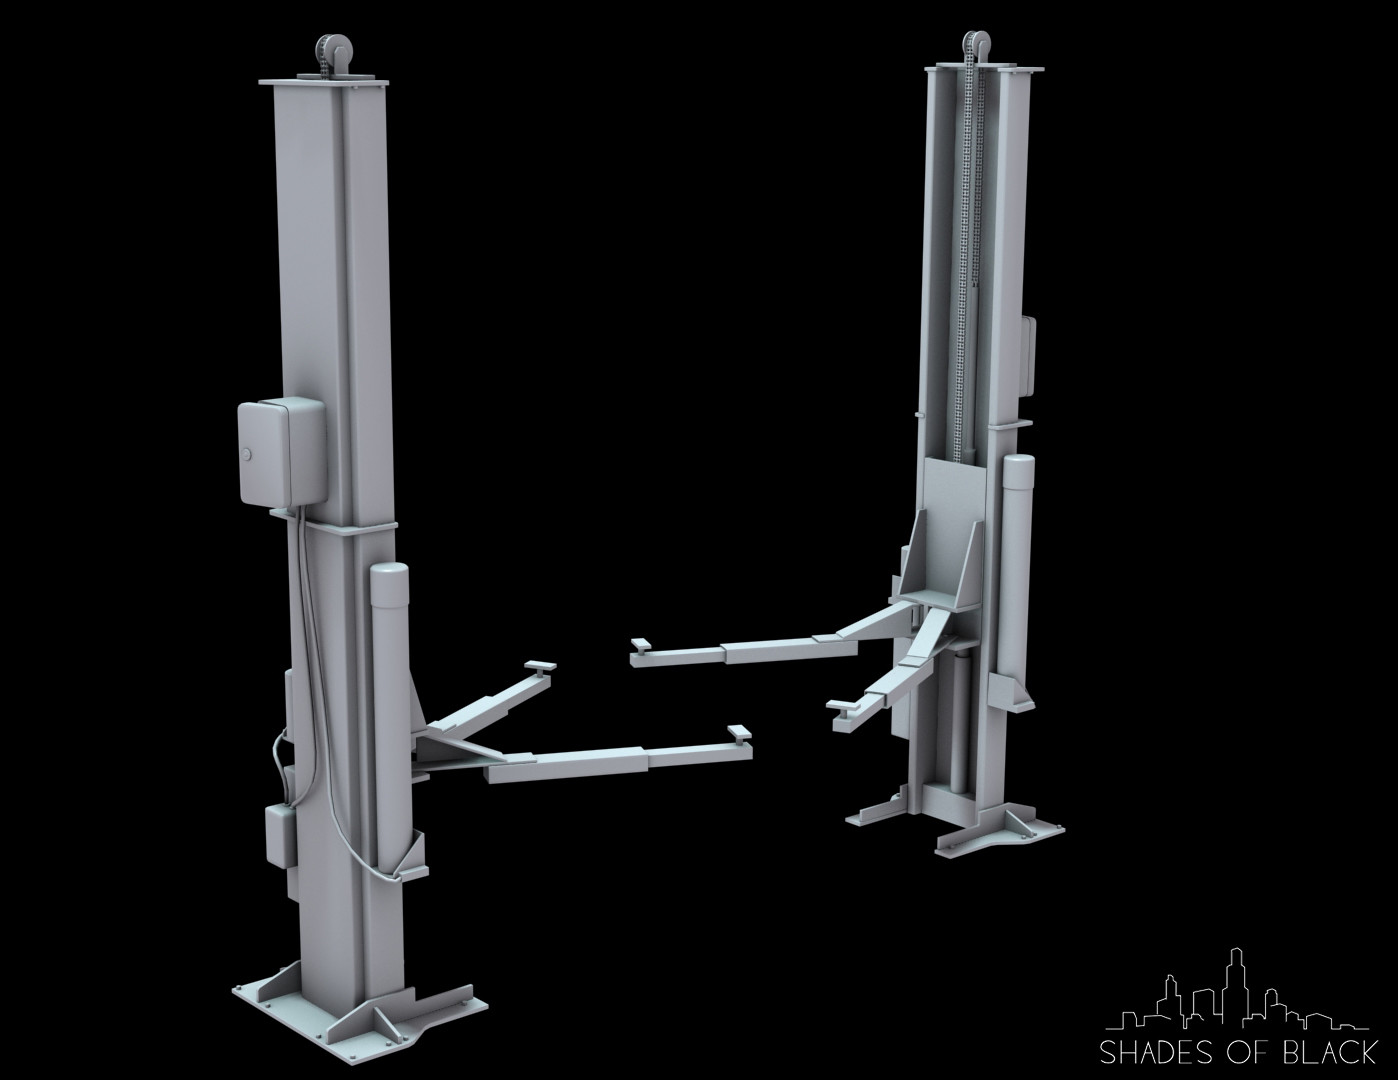 Car lift Hight poly version